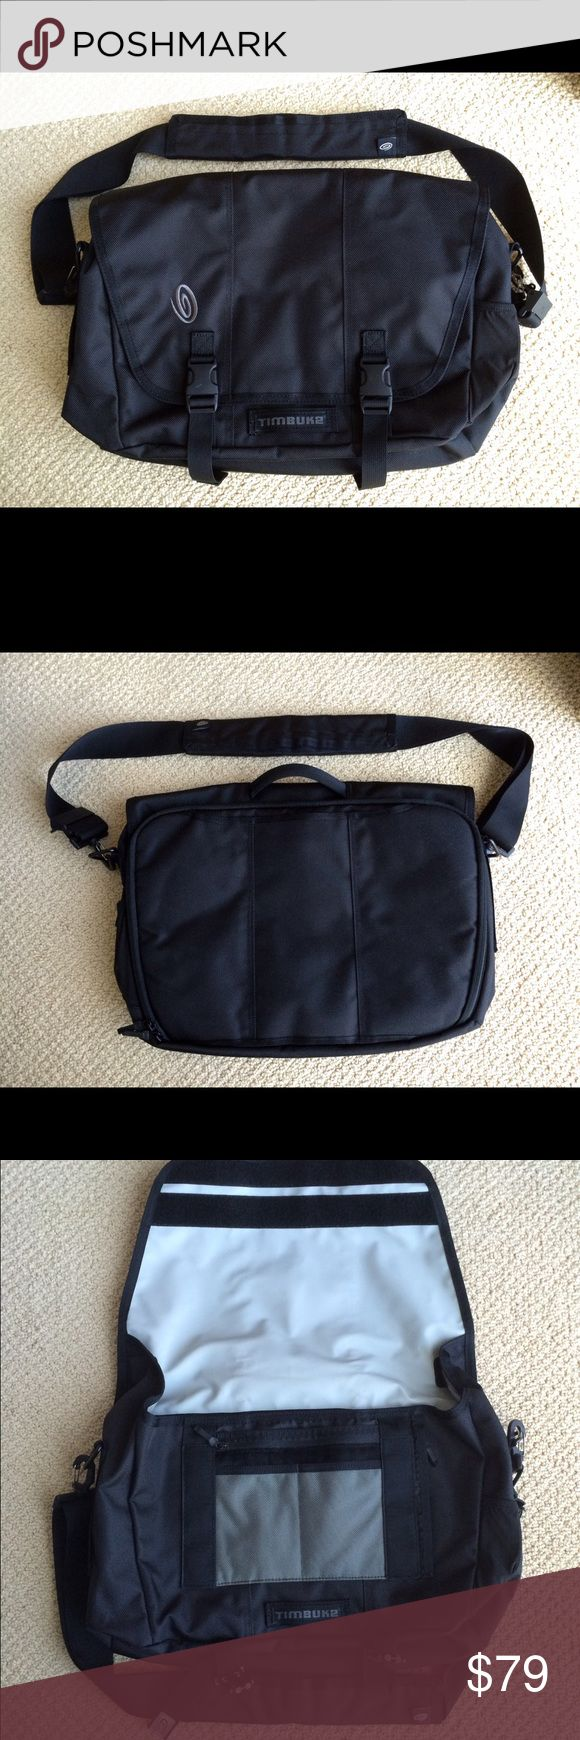 "🆕 NWOT Timbuk2 Commute Messenger Bag NWOT best classic laptop messenger bag for hauling your laptop, lunch, papers and everything else you need for the office or school. Features adjustable and removable crossbody strap. Internal pockets for both laptop and tablet. Two internal water bottle pockets, two internal zipper pockets, and more pockets for organizing pens, cords, etc. External dimensions: approx 13""H x 17""W x 5.5""D. One buckle has a very minor white mark as shown in last photo. By…"